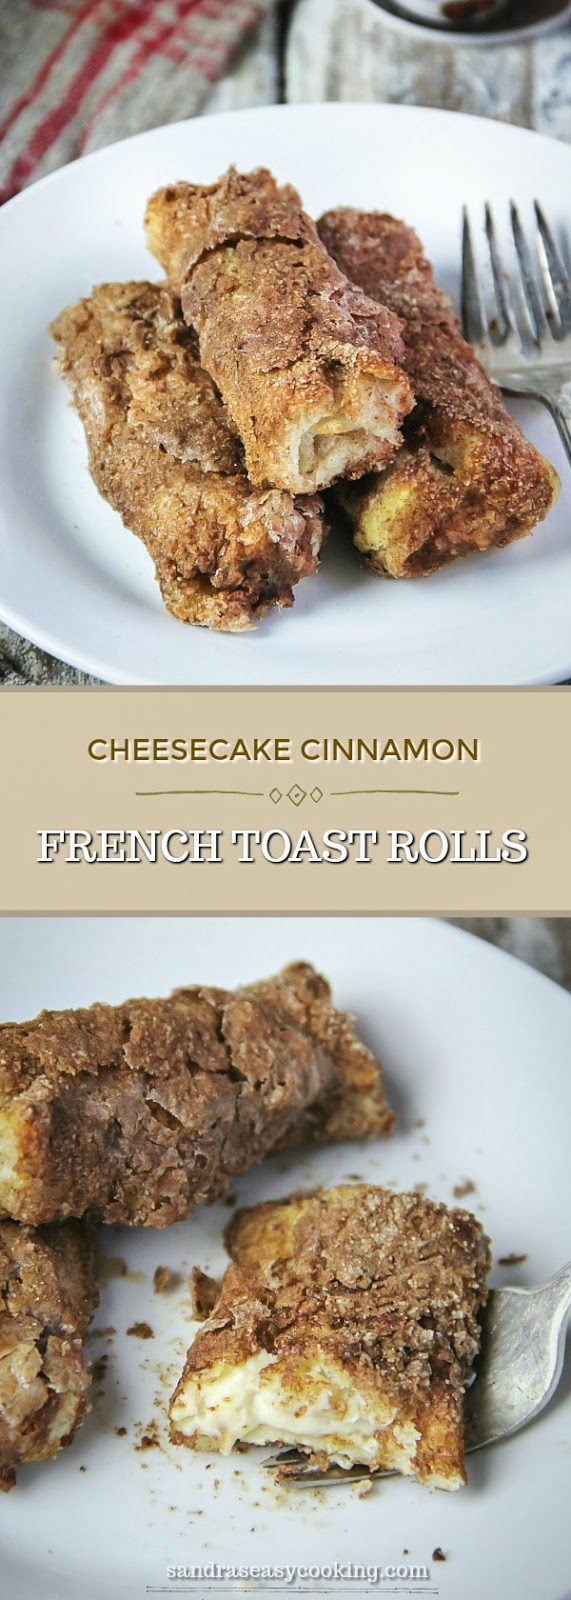 Cheesecake Cinnamon French Toast, Rolls- Easy and amazingly delicious sweet treat that your family going to love. For more recipes, visit sandraseasycooking.com